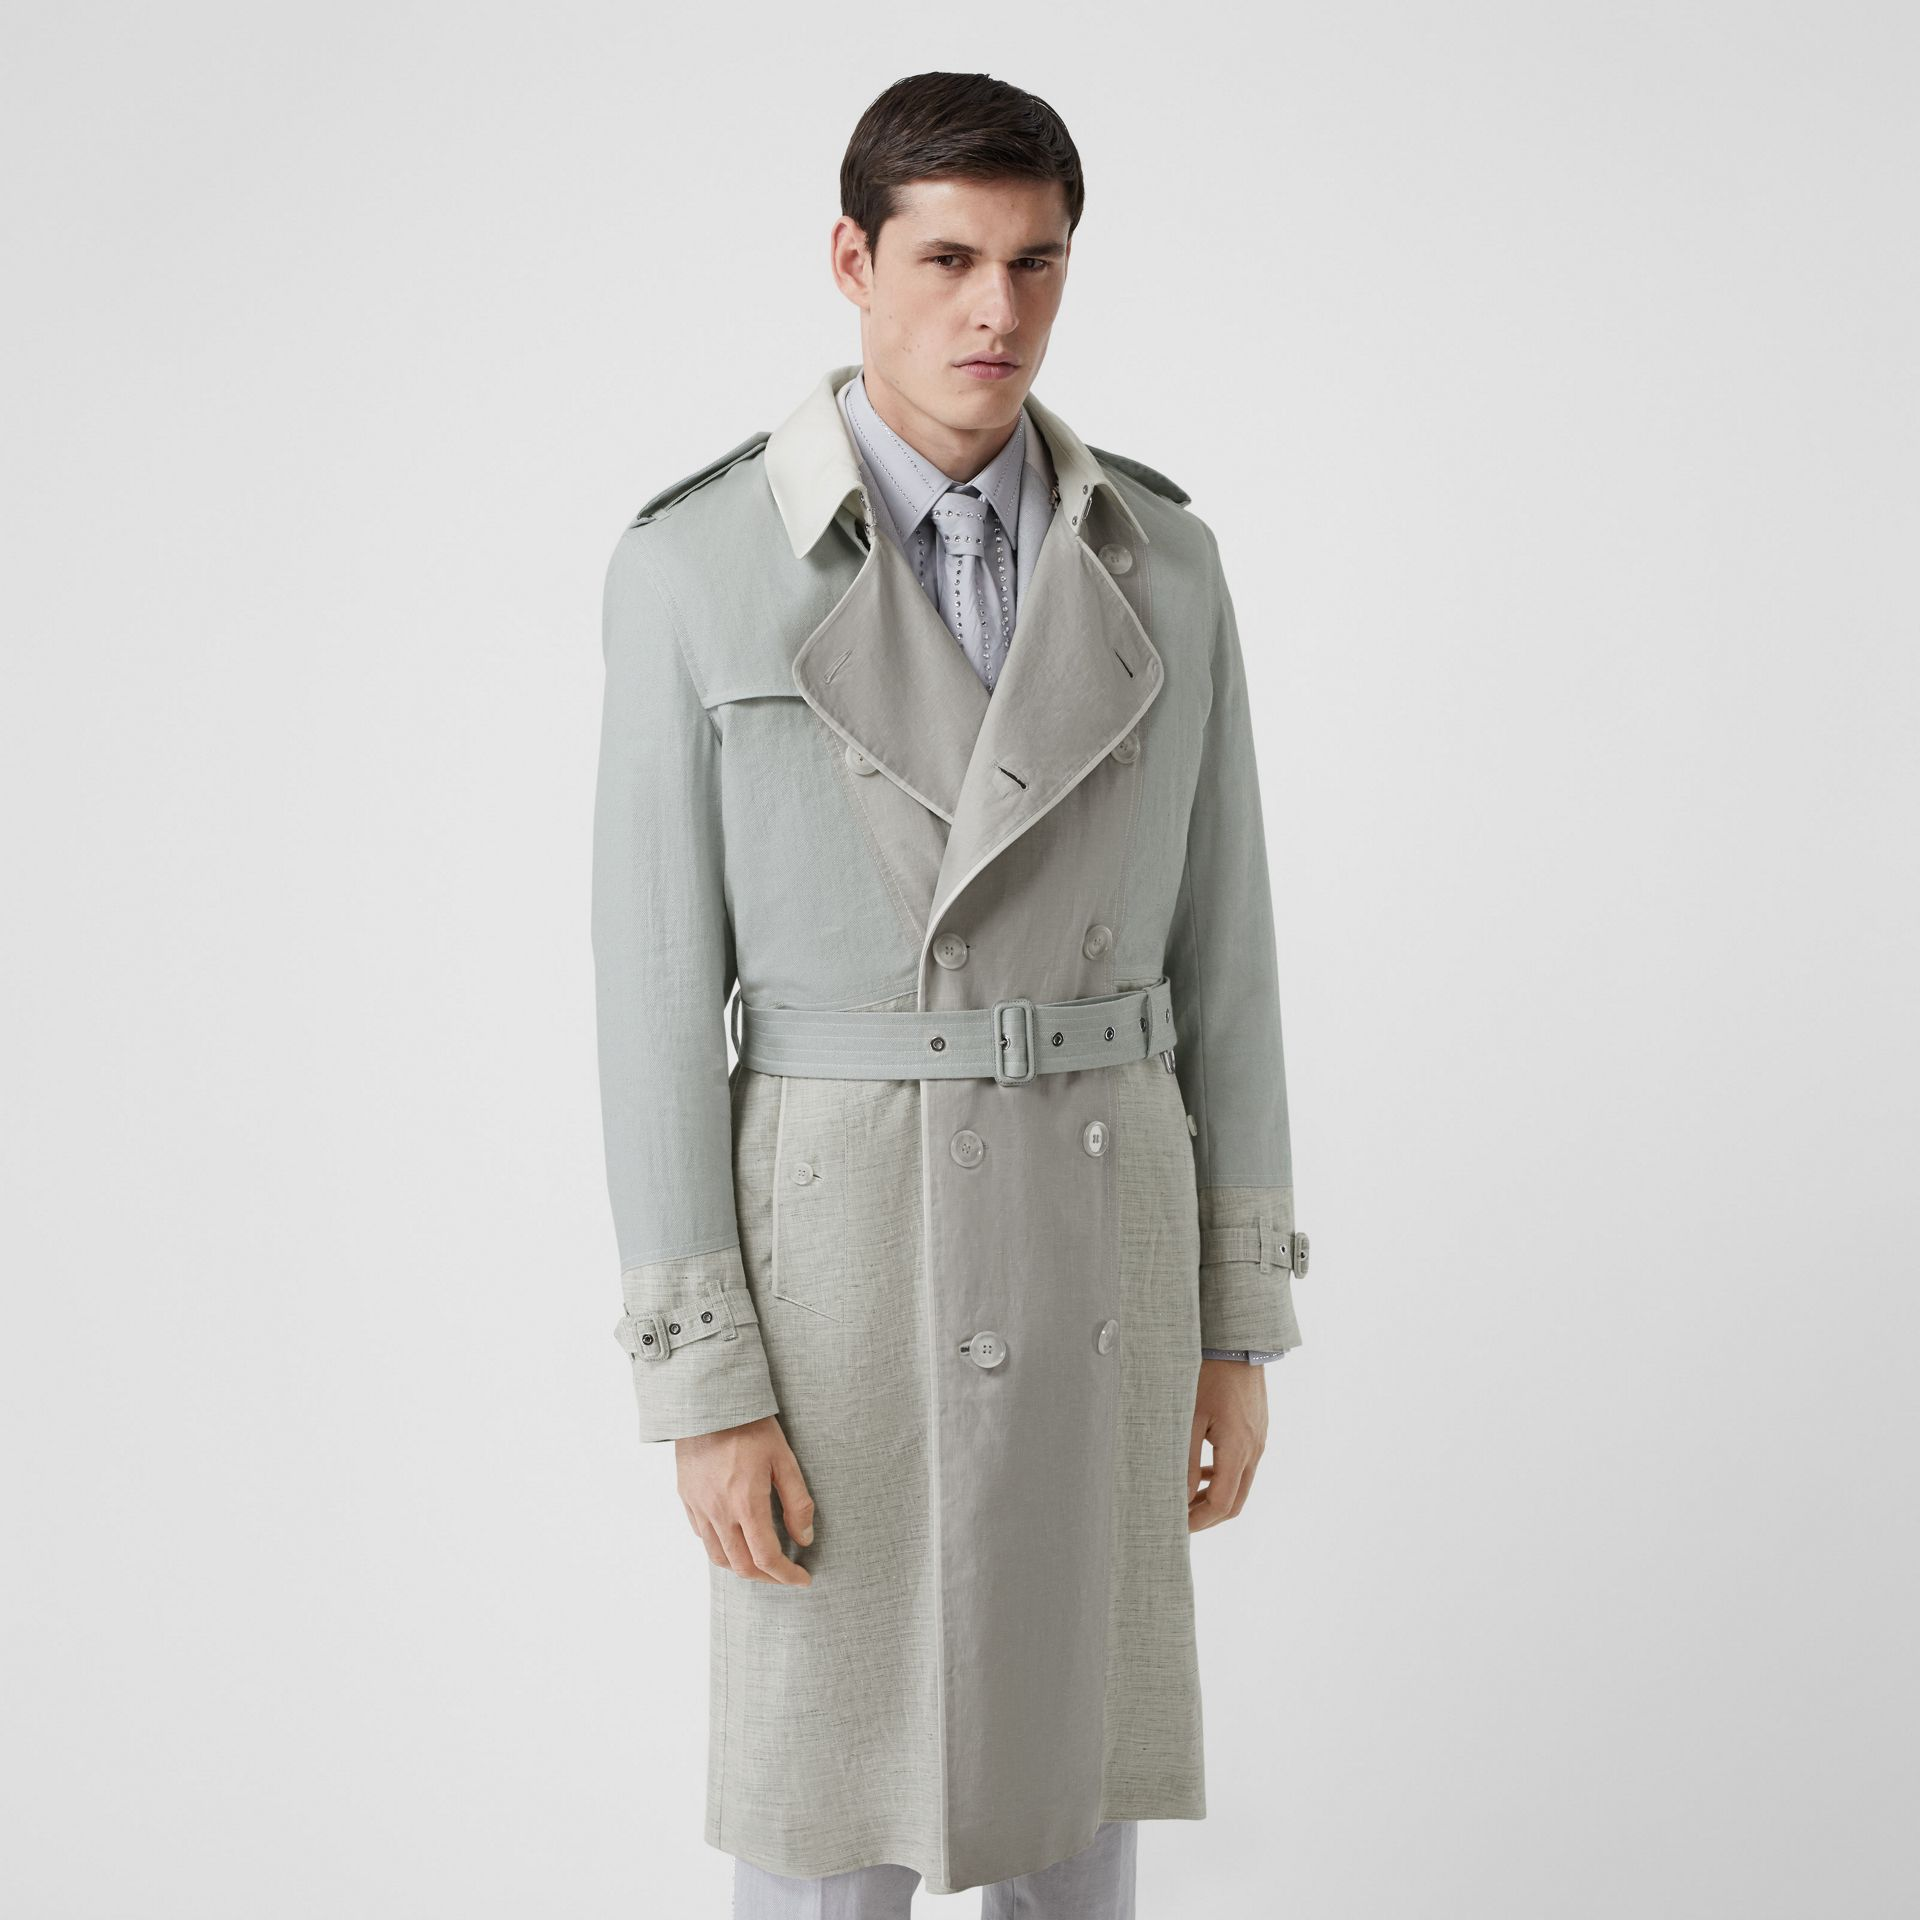 Panelled Linen Trench Coat in Light Pebble Grey - Men | Burberry - gallery image 5